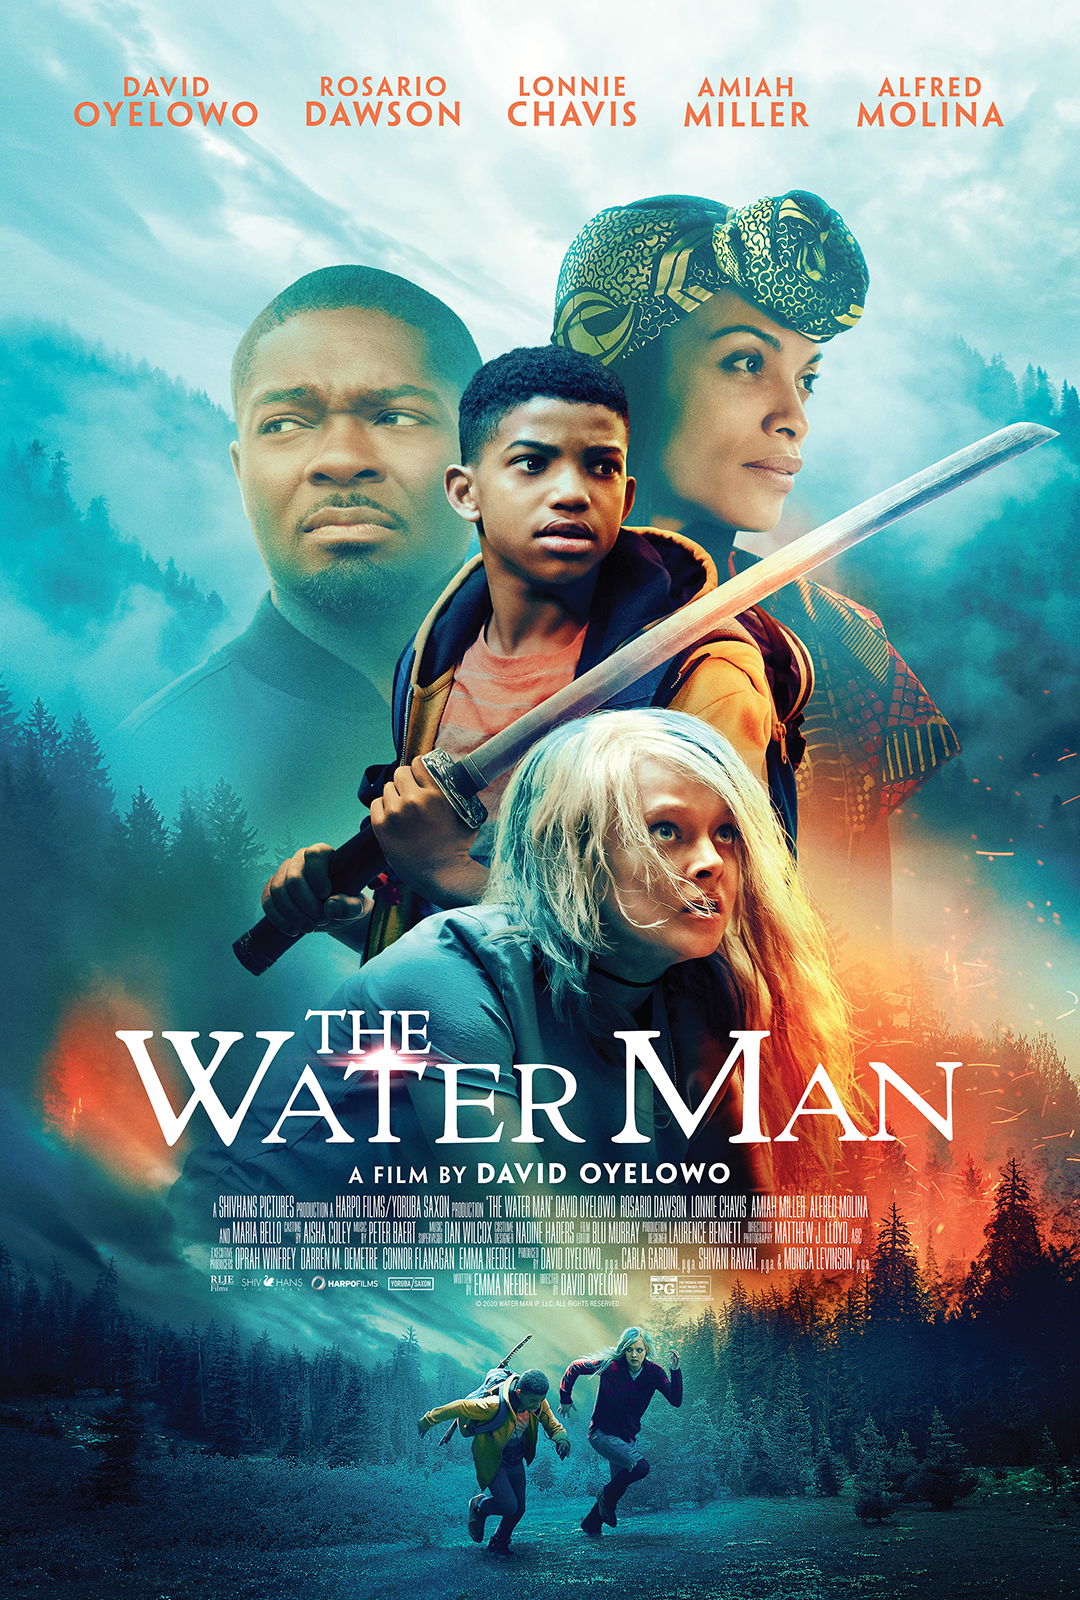 Watch the New Trailer for THE WATER MAN #TheWaterMan